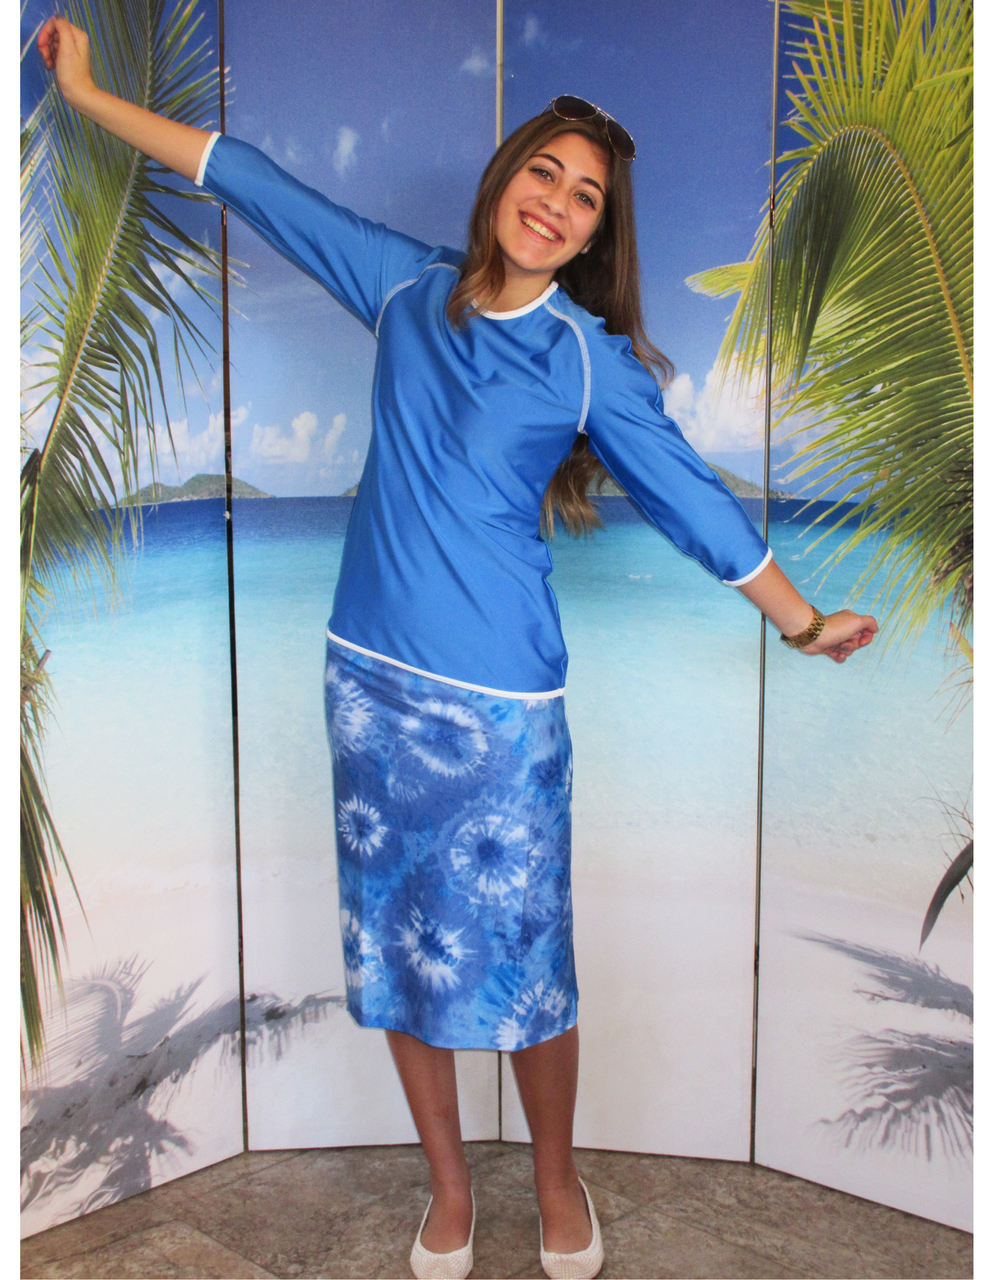 model-wearing-style-2629-in-sailing-blue-with-batique-blue-skirt-09257.1447440669.1280.1280.jpg